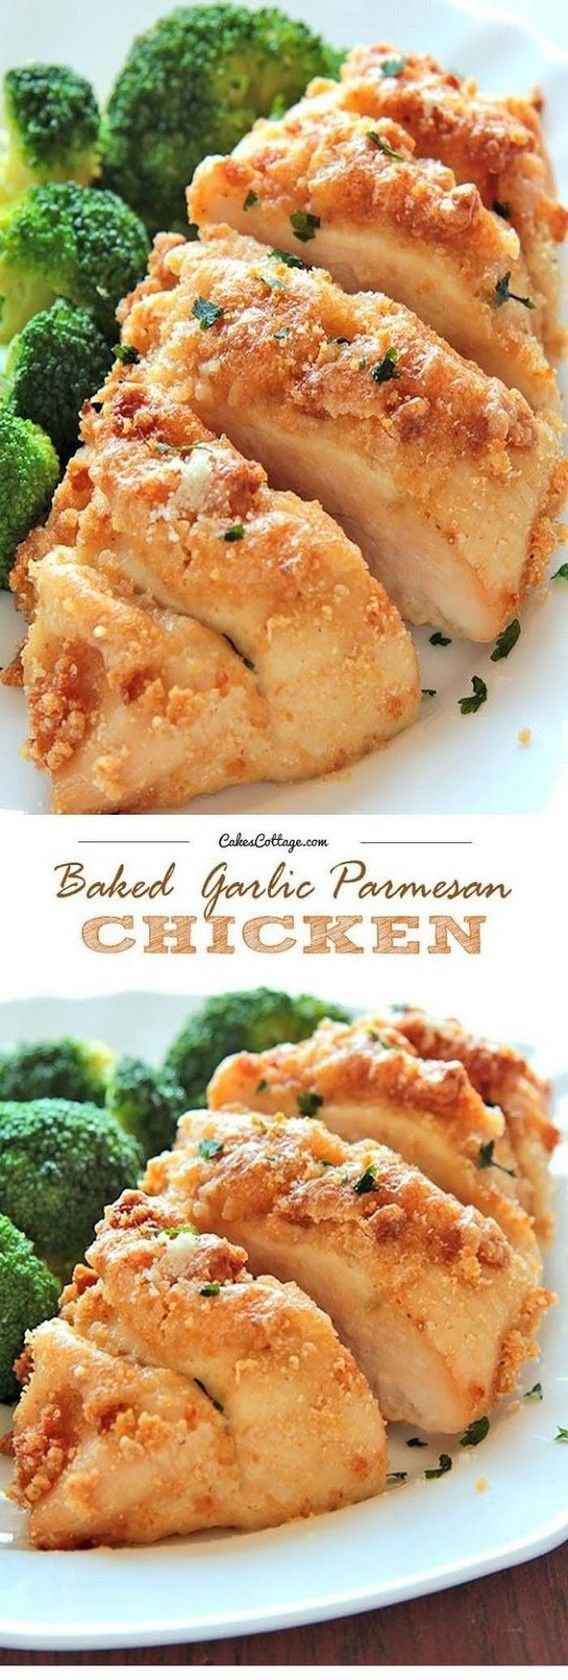 Baked Garlic Parmesan Chicken | Super Tasty Recipes #chickenparmesan